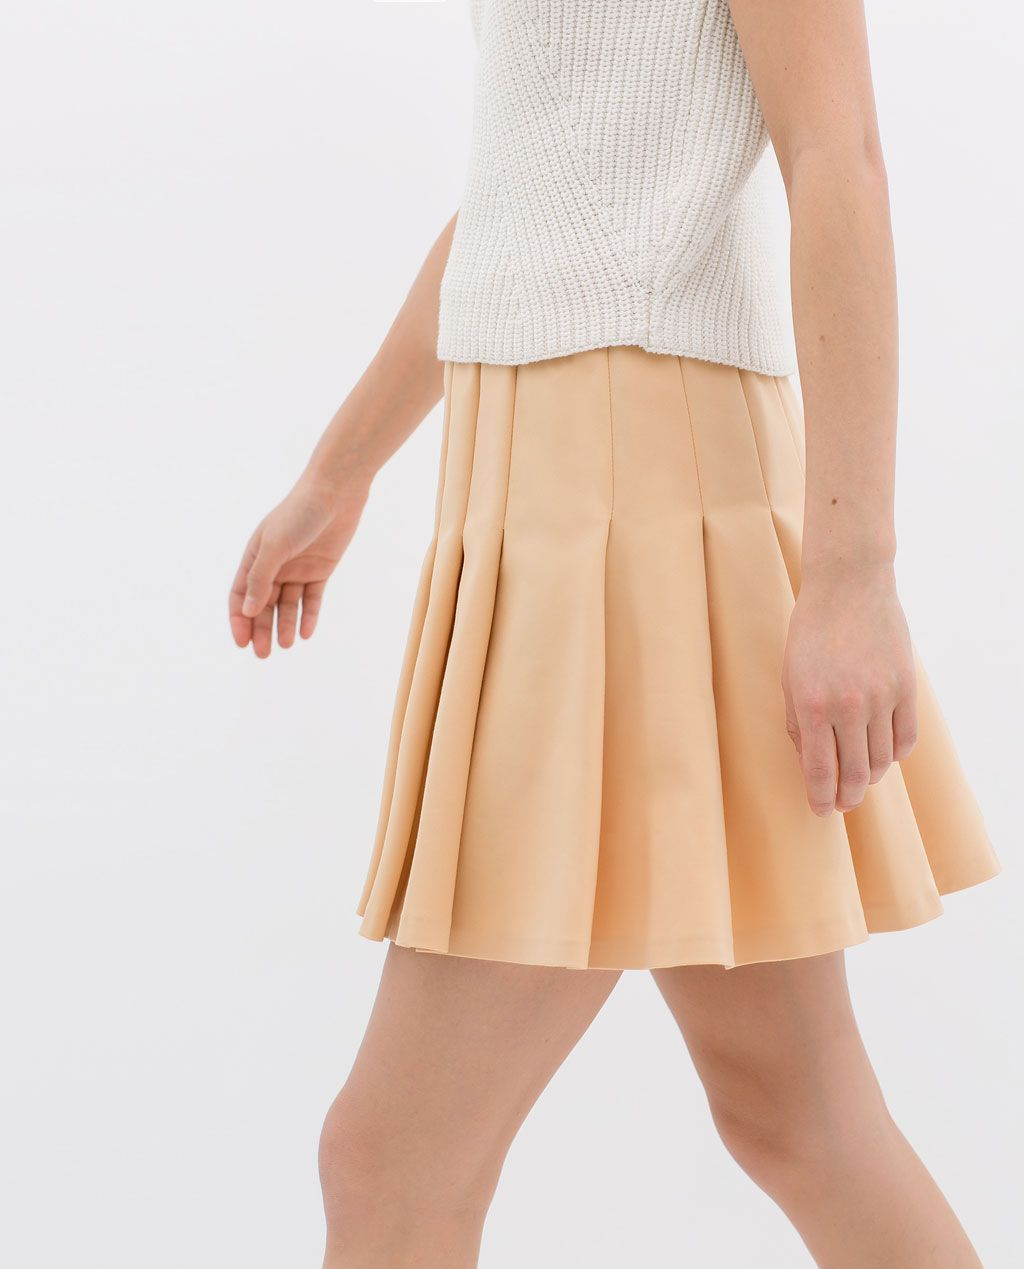 894196ede6 BOX PLEAT SKIRT WITH ELASTIC WAISTBAND from Zara   My Style Pinboard ...